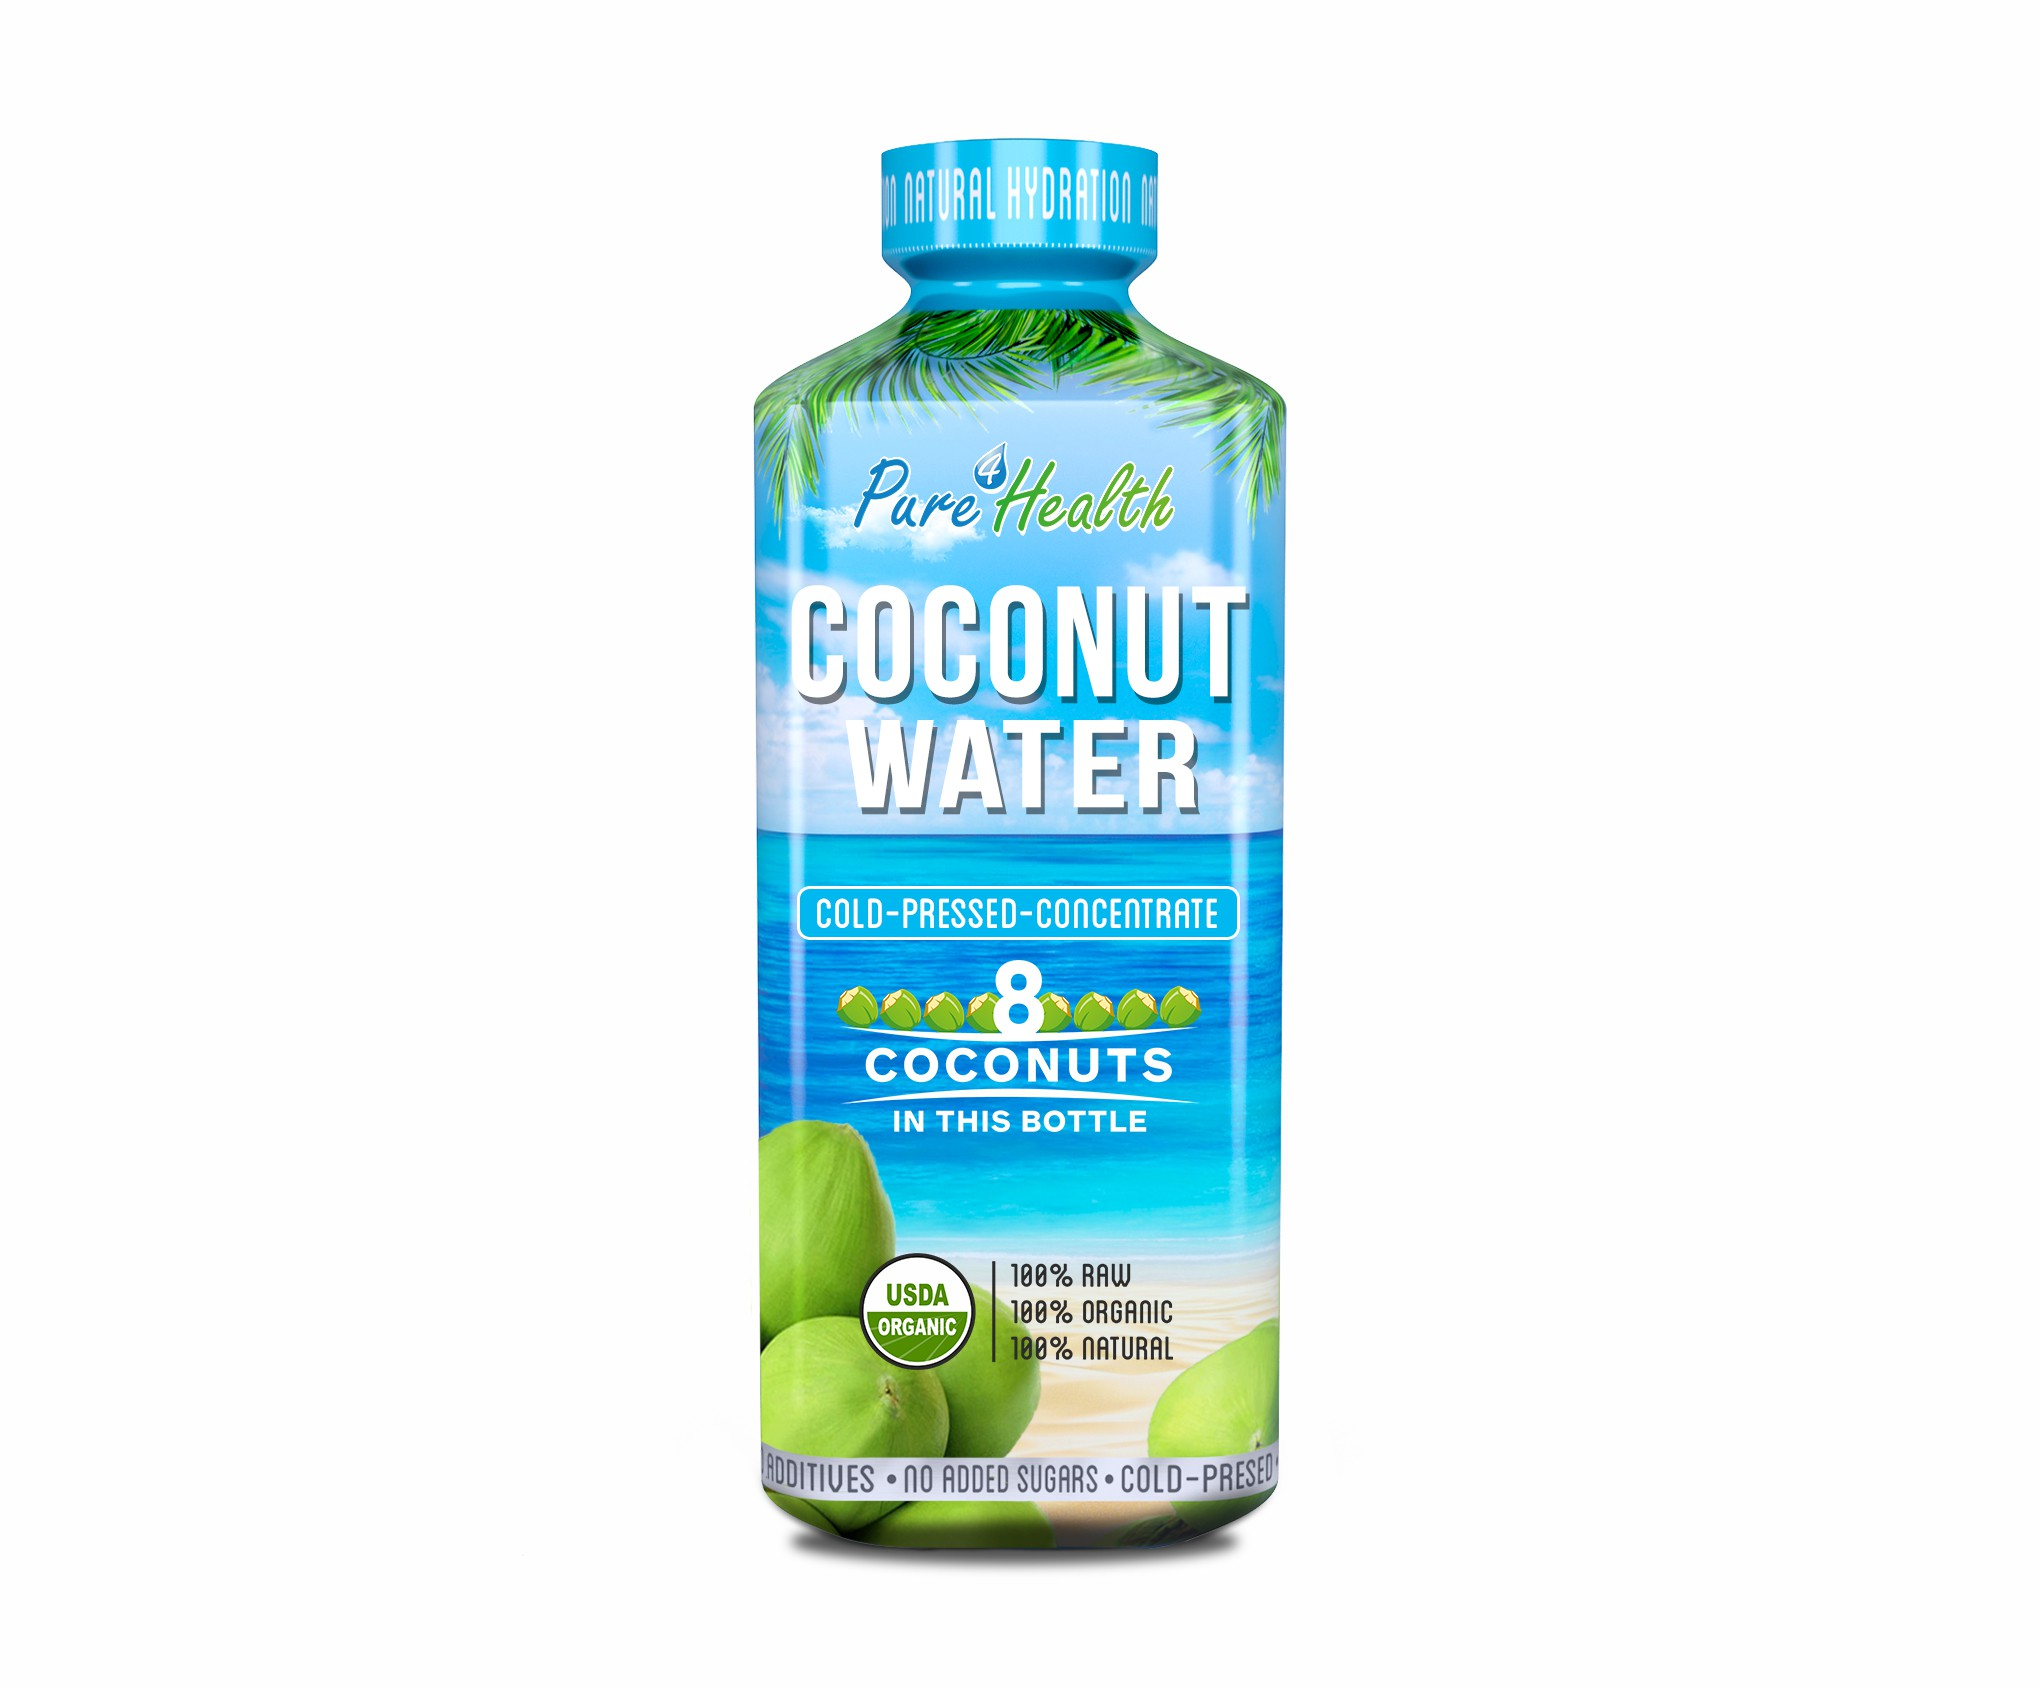 Create a logo and bottle label for the hottest new coconut water on the market